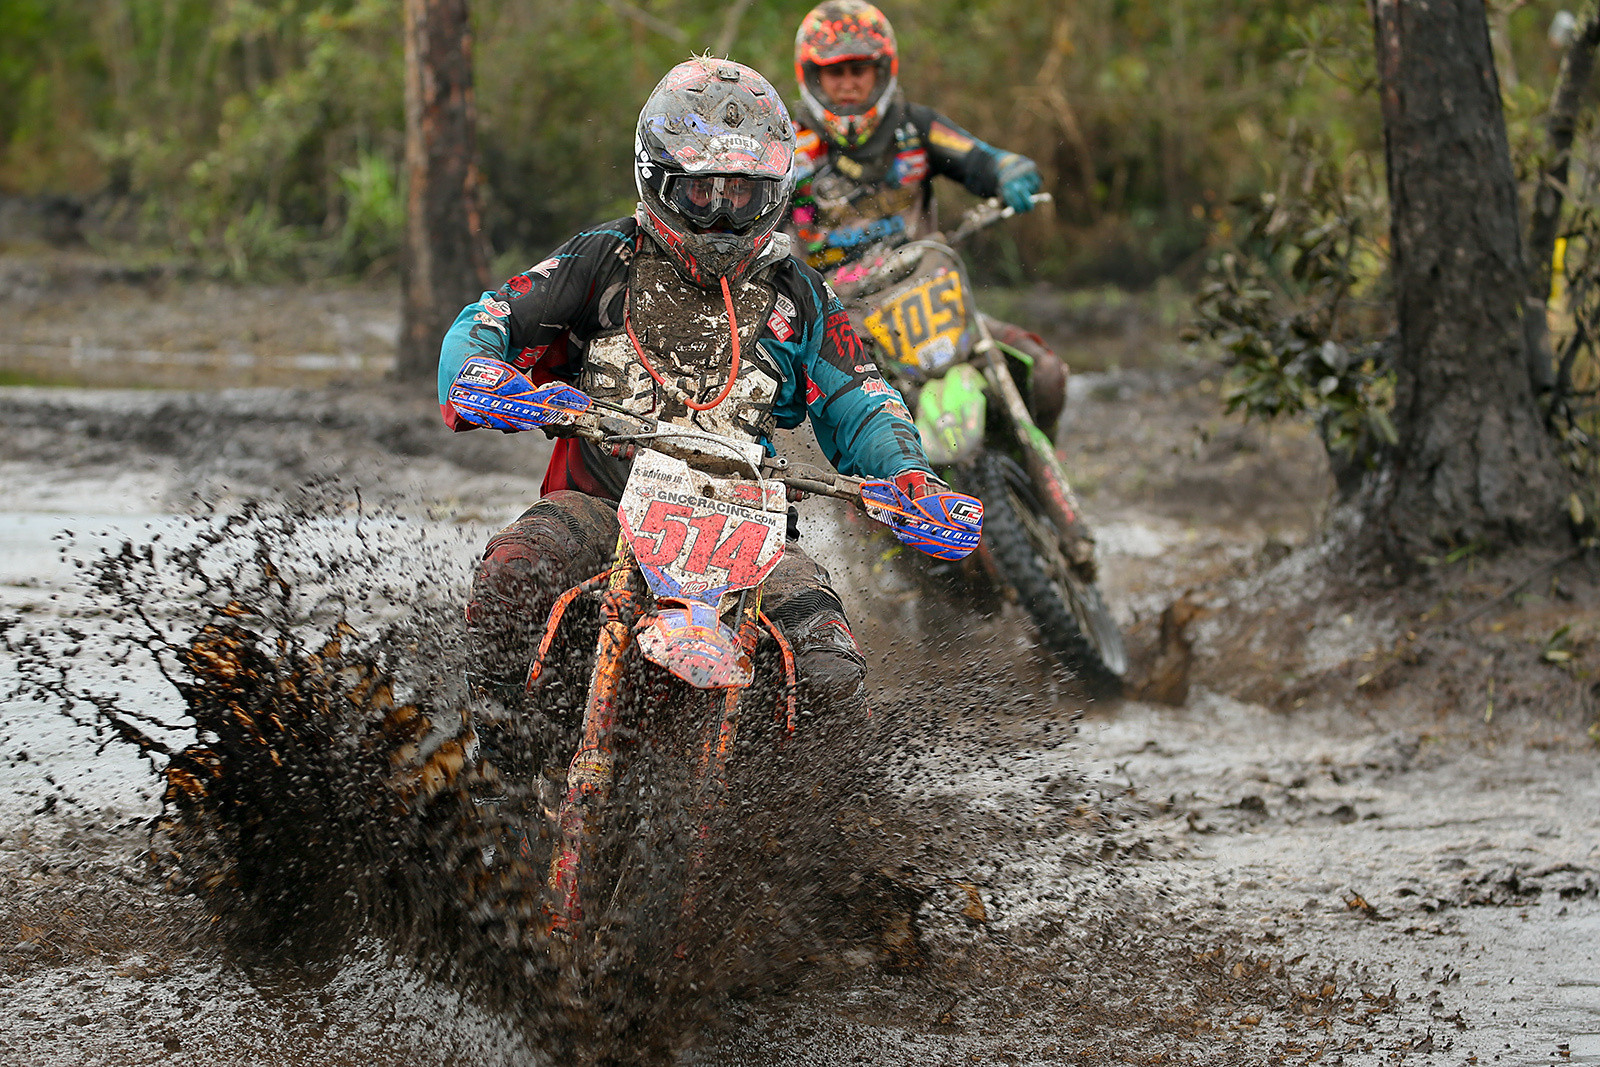 Steward Baylor - Wild Boar GNCC - Motocross Pictures - Vital MX